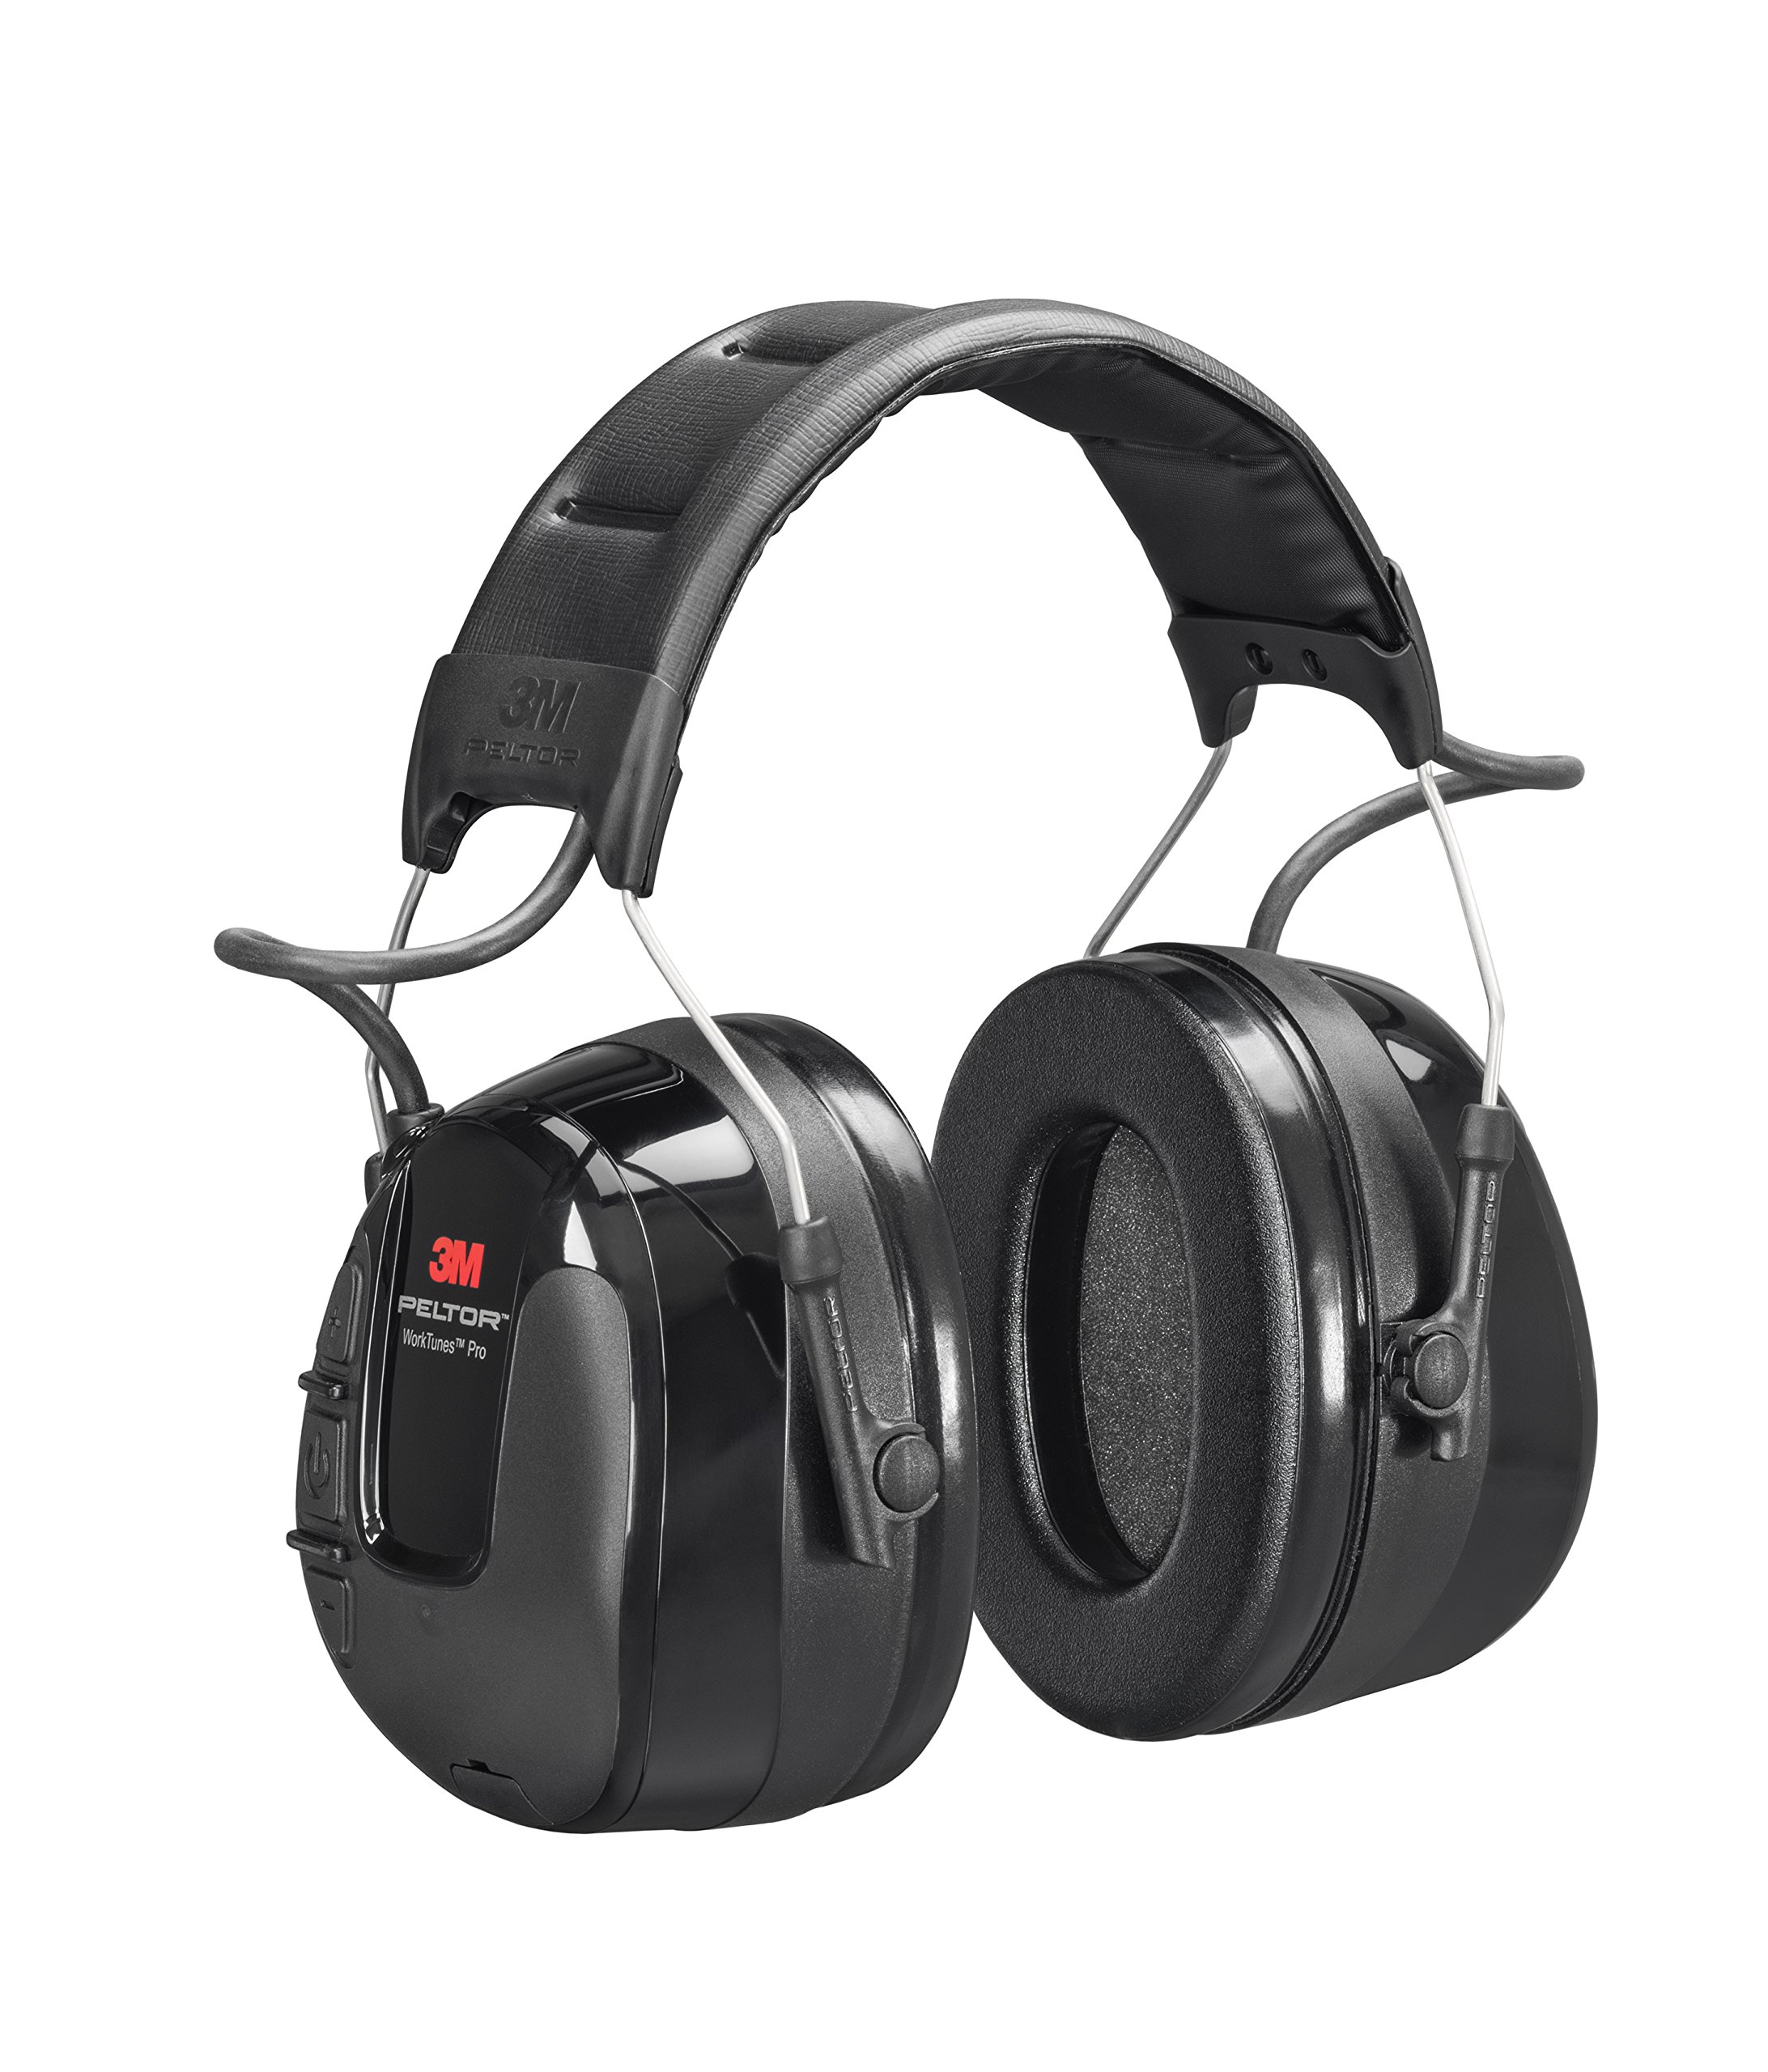 3M 67086 PELTOR WorkTunes Pro AM/FM Radio Headset, Headband, One Size by 3M Personal Protective Equipment (Image #1)